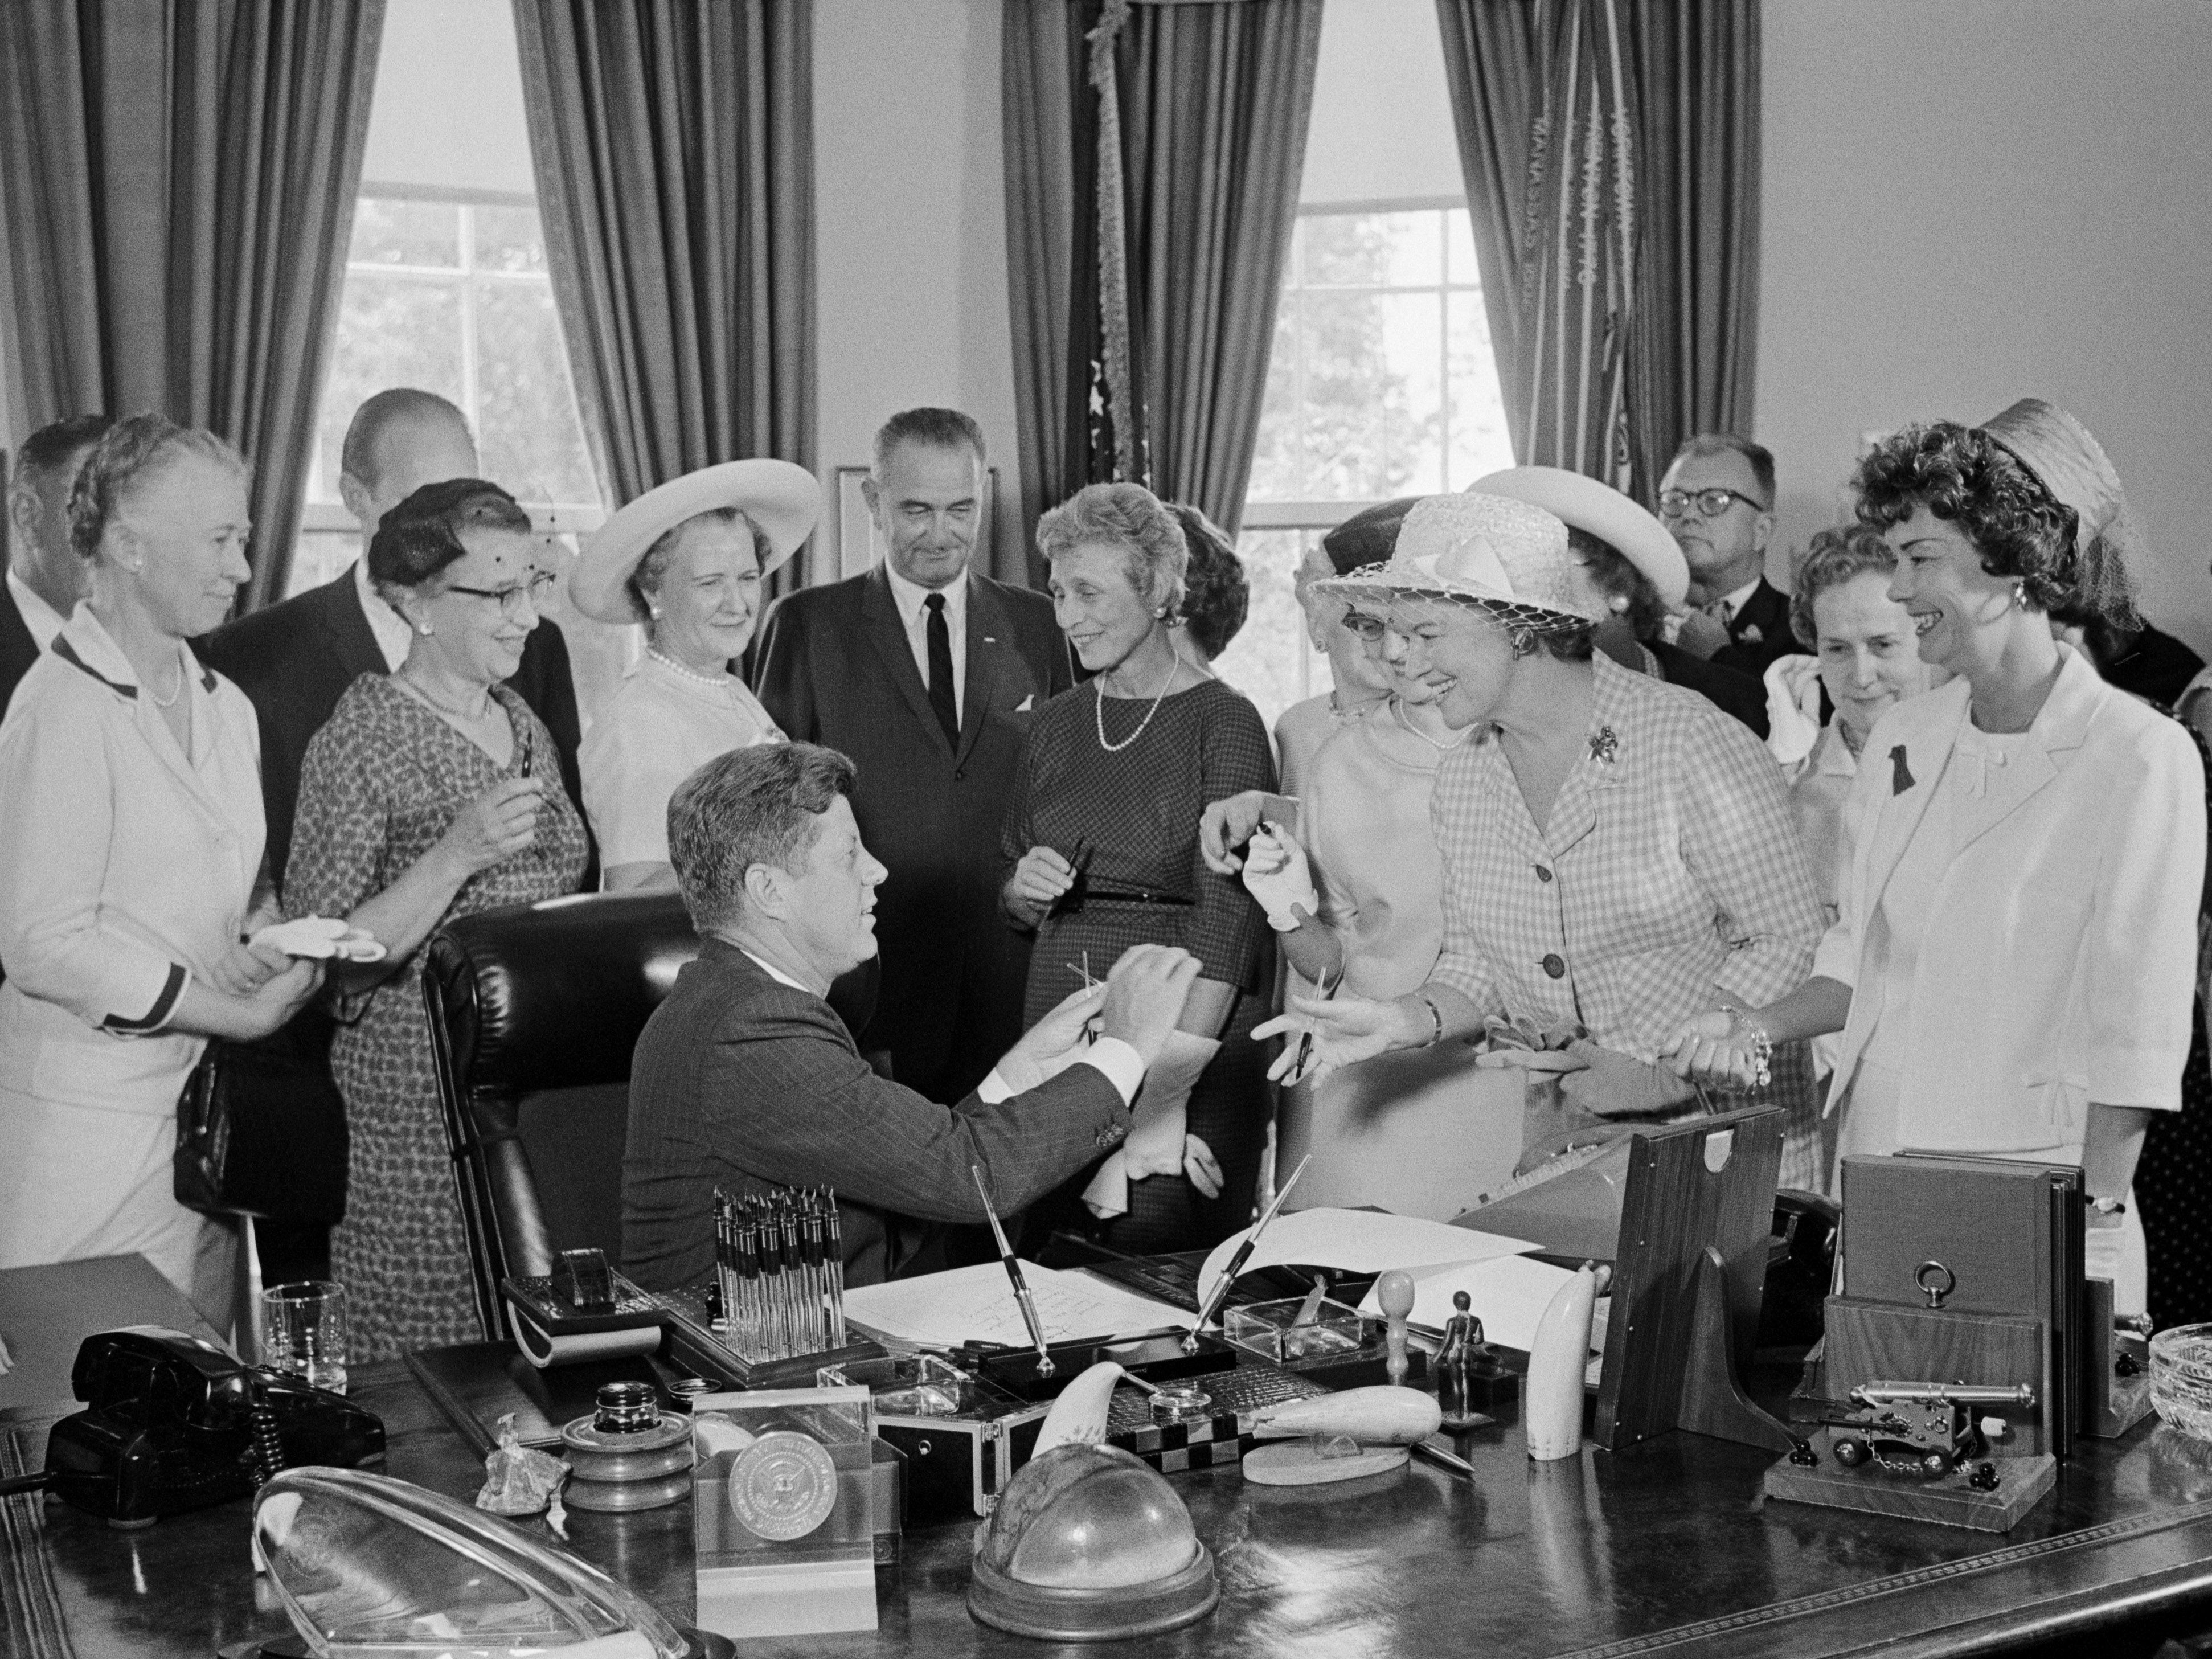 The Equal Pay Act was signed as a law on June 10, 1963 by President John F. Kennedy. At the time women made up one-third of the national workforce. Women earned 59 cents for every dollar a man earned. (http://www.msnbc.com/jansing-co/50-years-women-still-fighting-equal-p)